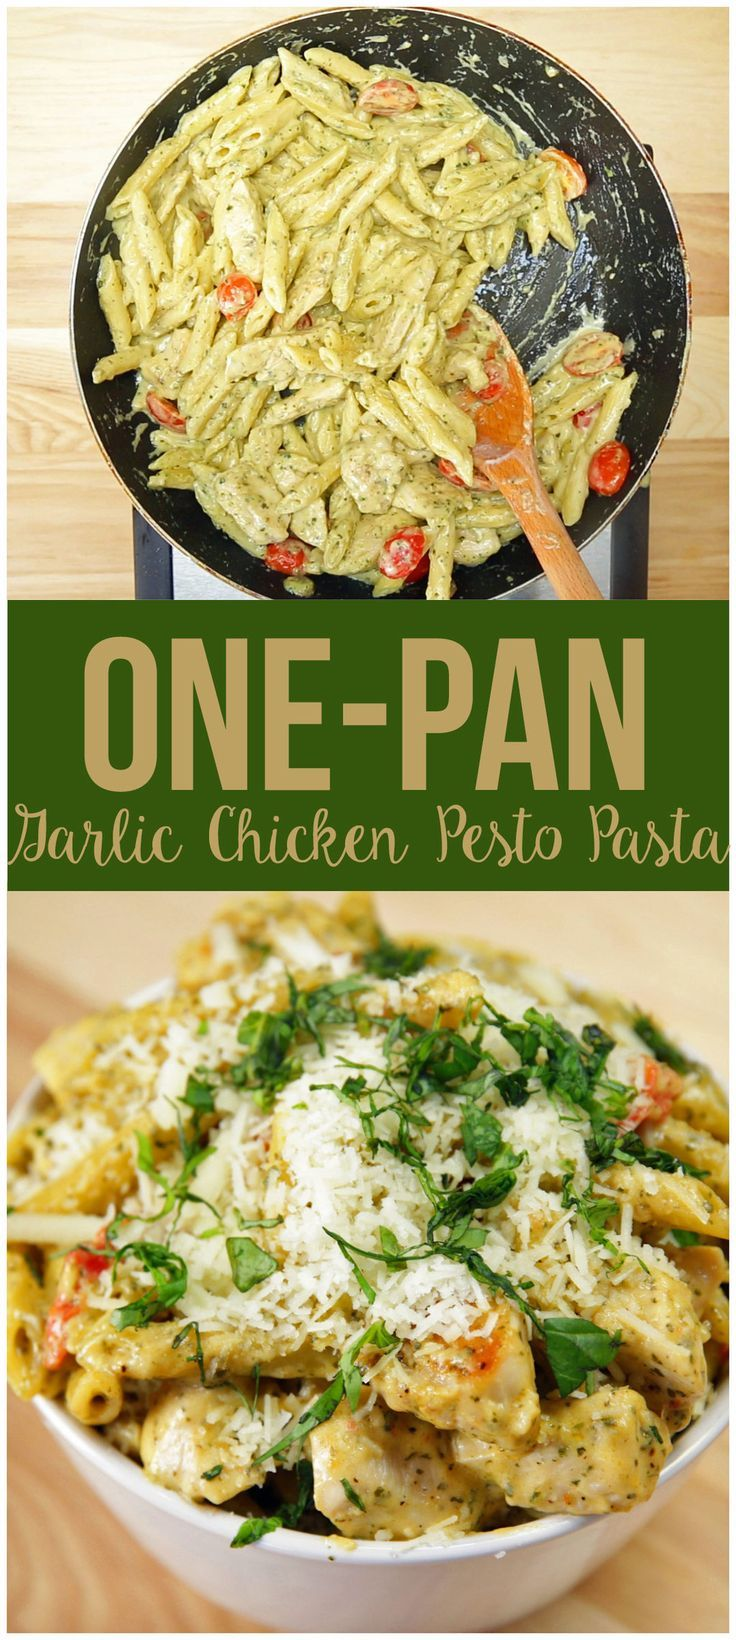 This Easy AF One-Pan Pasta Dish Is Definitely Dinner Tonight https://www.buzzfeed.com/alvinzhou/try-this-one-pan-garlic-chicken-pesto-pasta-dish-for-dinner?sub=4177892_8169520 (chicken garlic pasta)